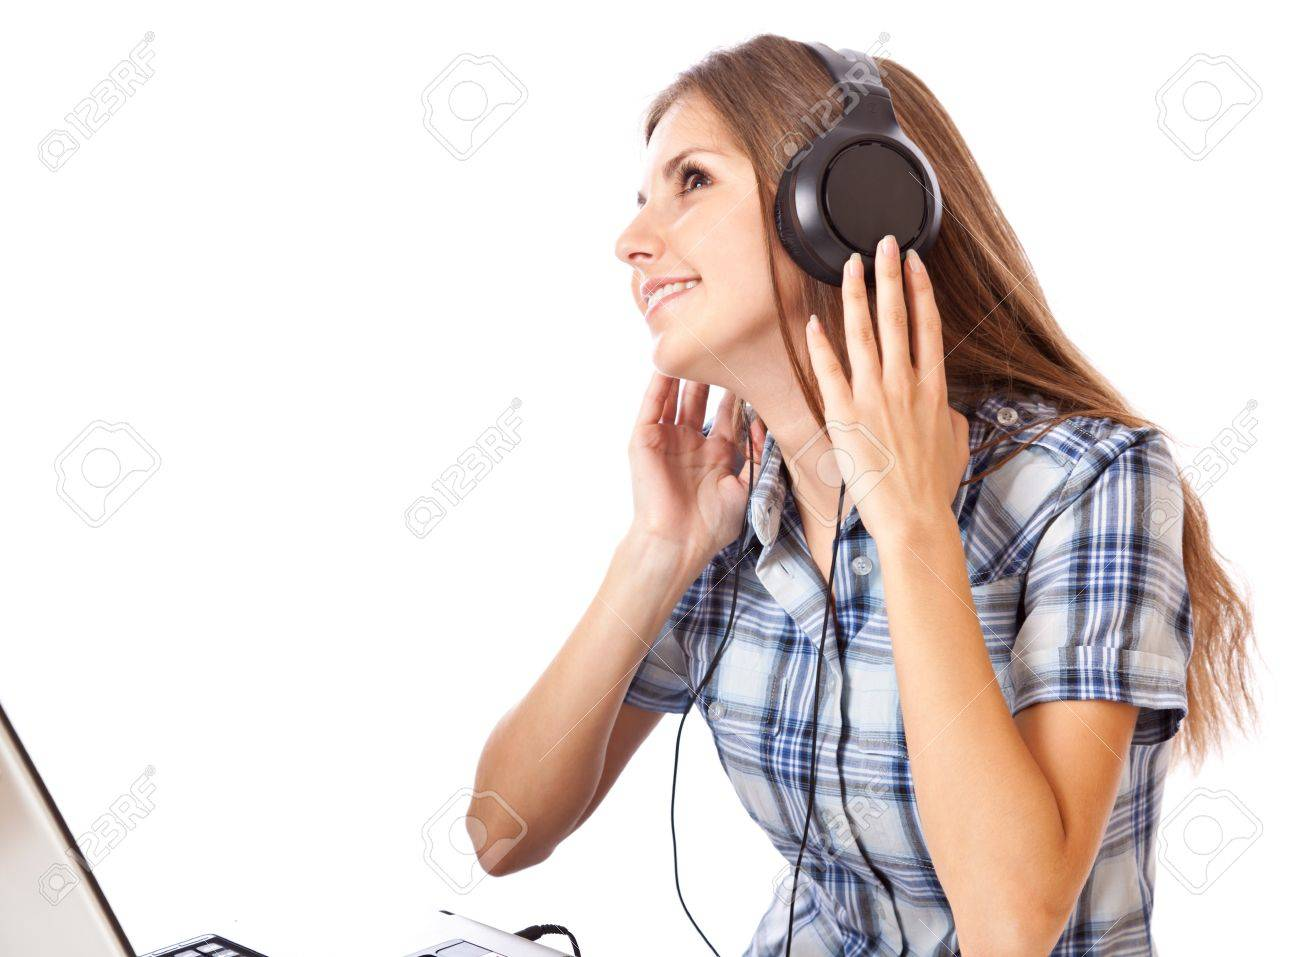 Teen-girl listen to music in headphones with laptop. Isolated on white background Stock Photo - 7923008